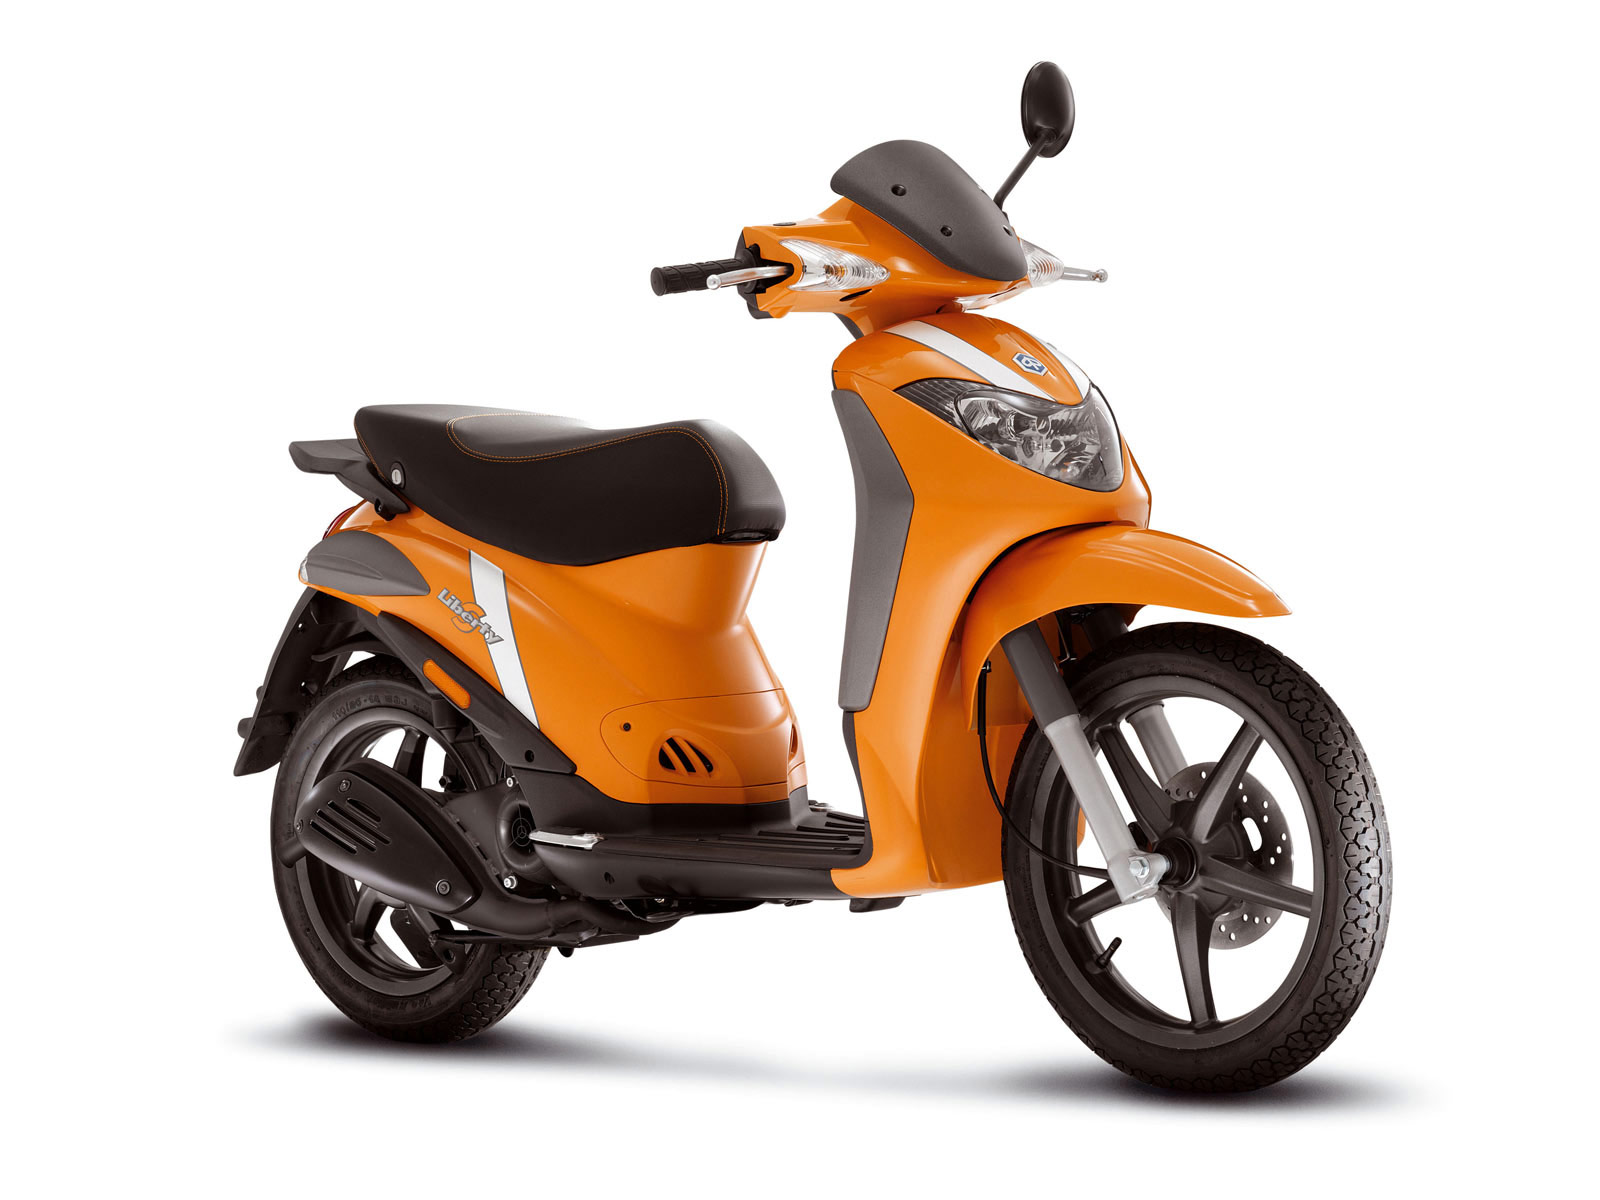 2008 PIAGGIO Liberty S Scooter Pictures